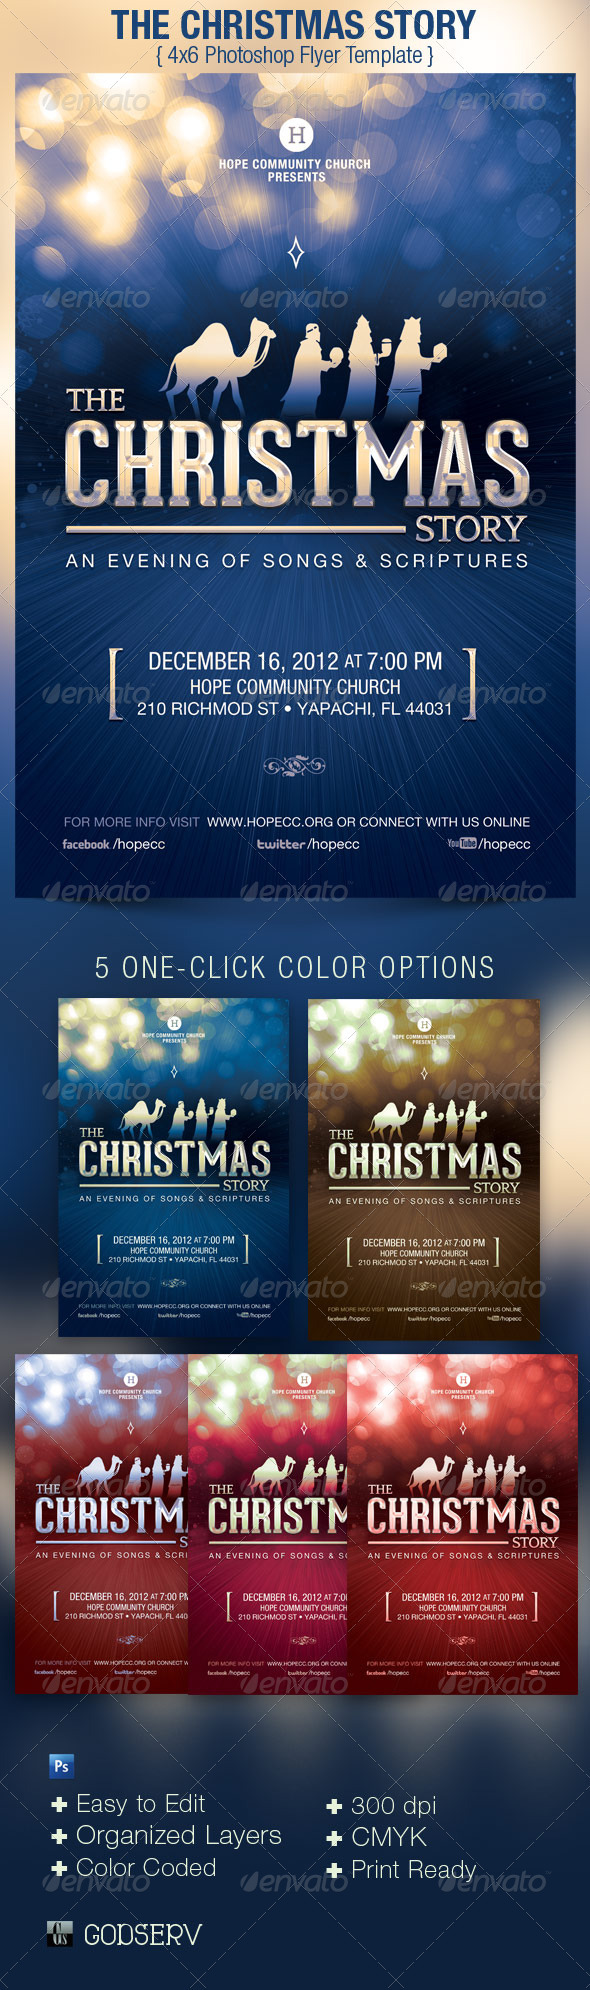 Christmas Story Church Flyer Template